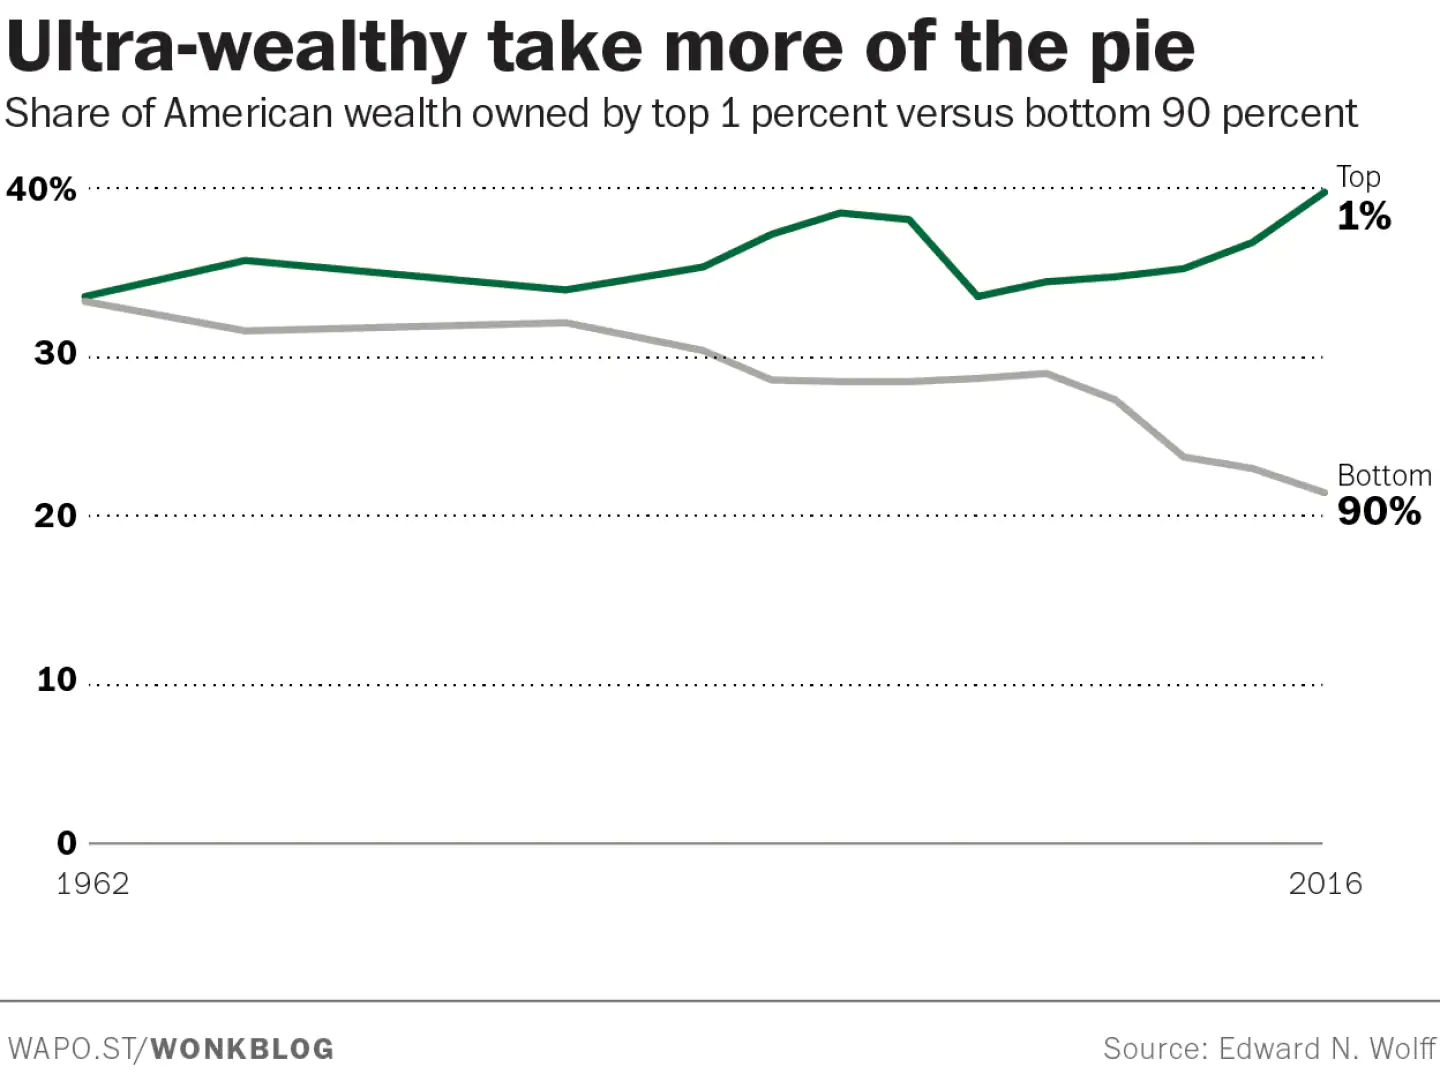 Wealthy take more of the pie